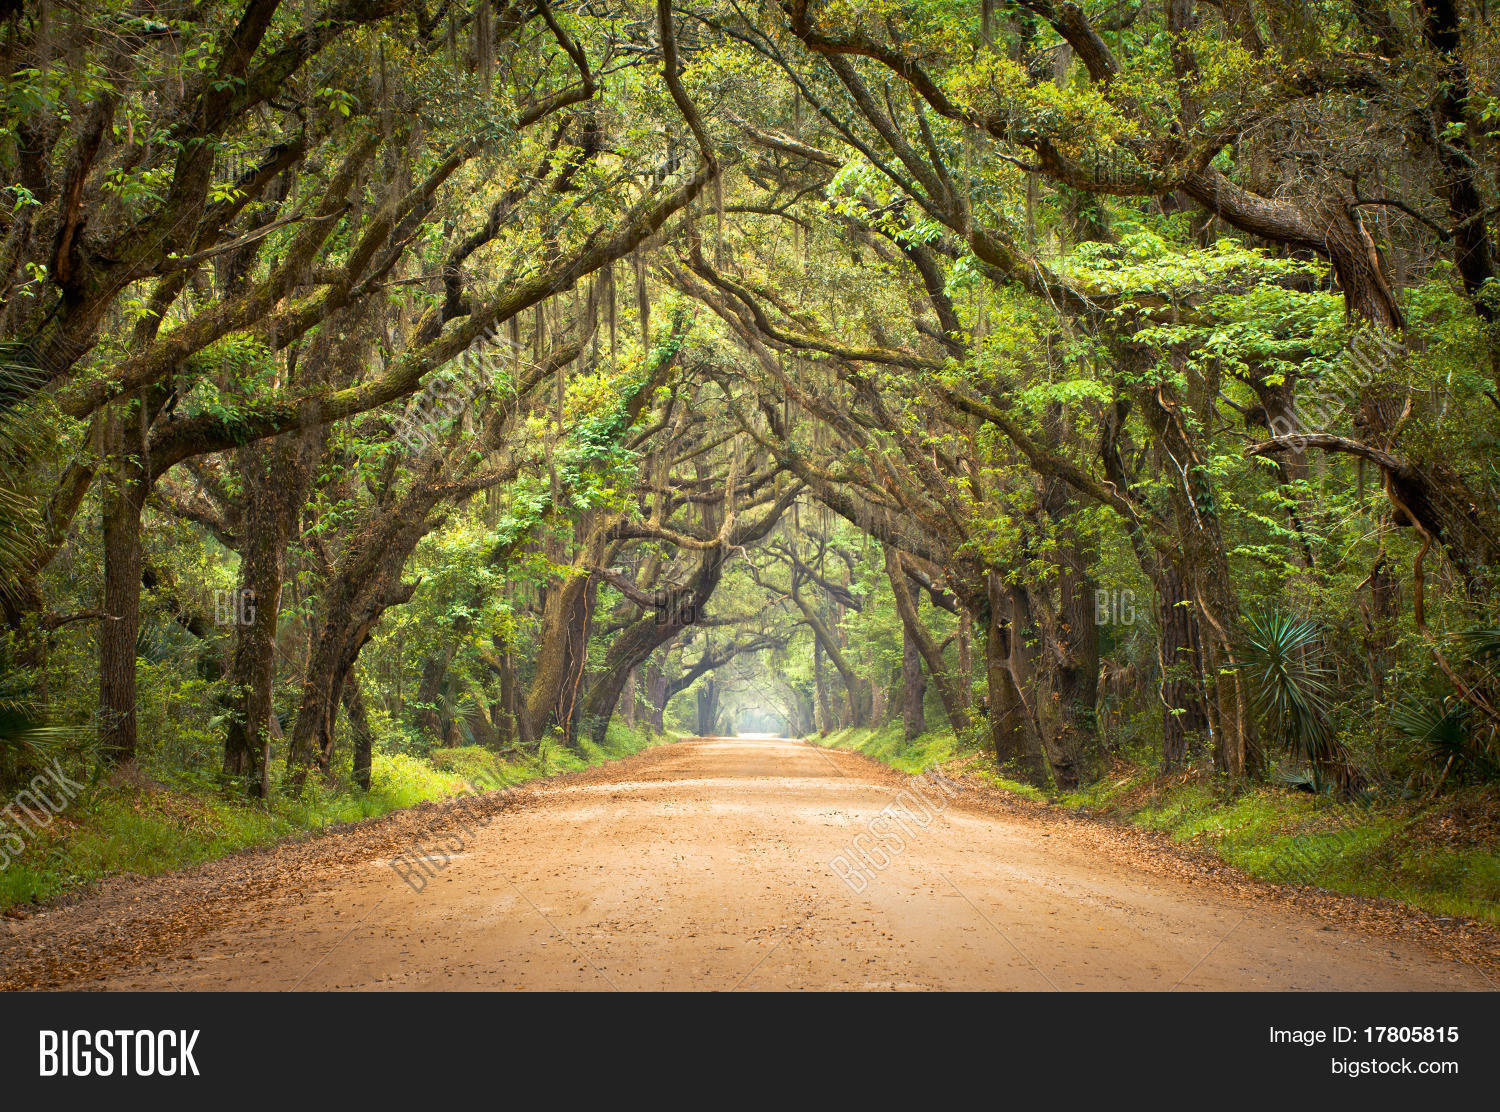 botany bay spooky dirt road creepy image amp photo bigstock